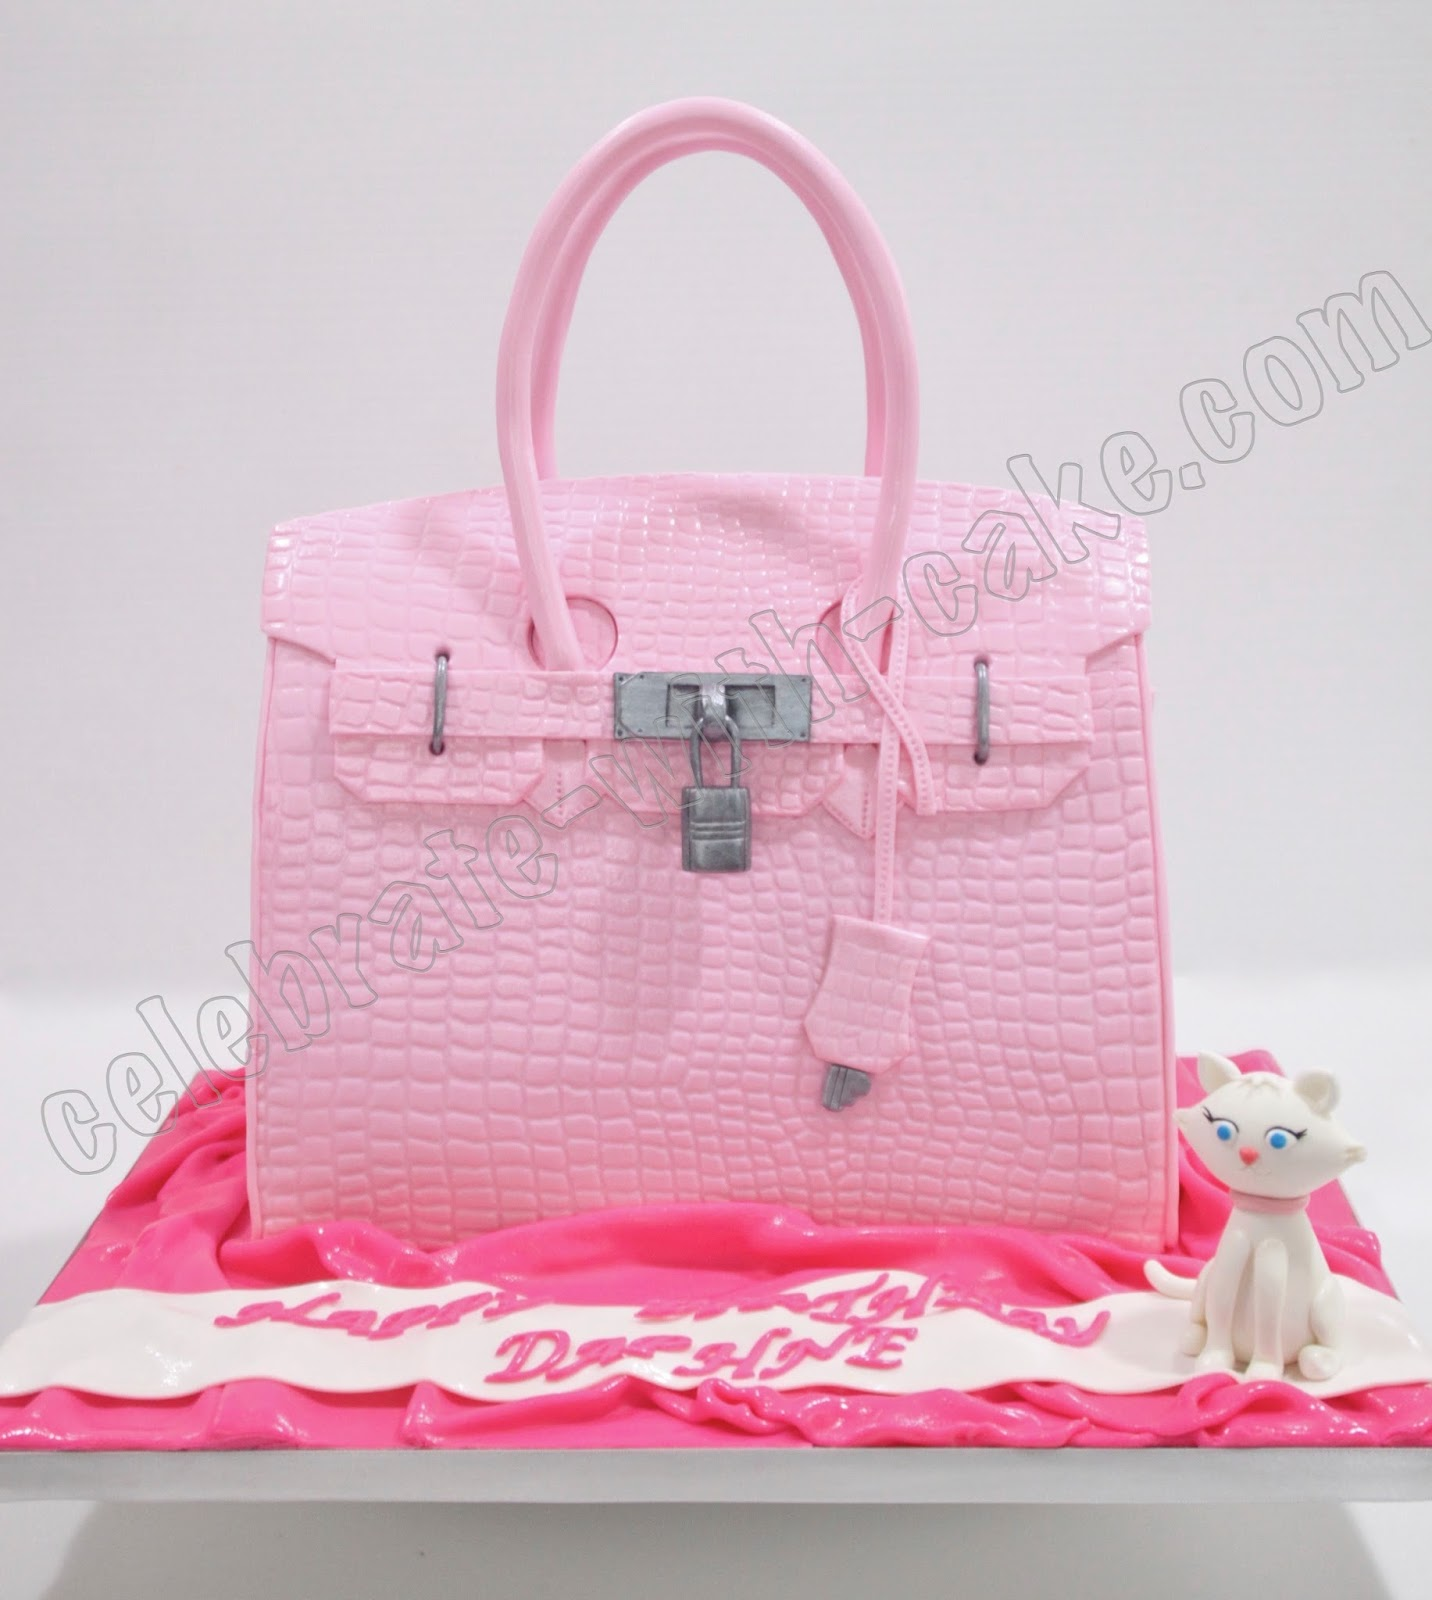 replica hermes wallet - Celebrate with Cake!: Pink Hermes Birkin Bag Cake